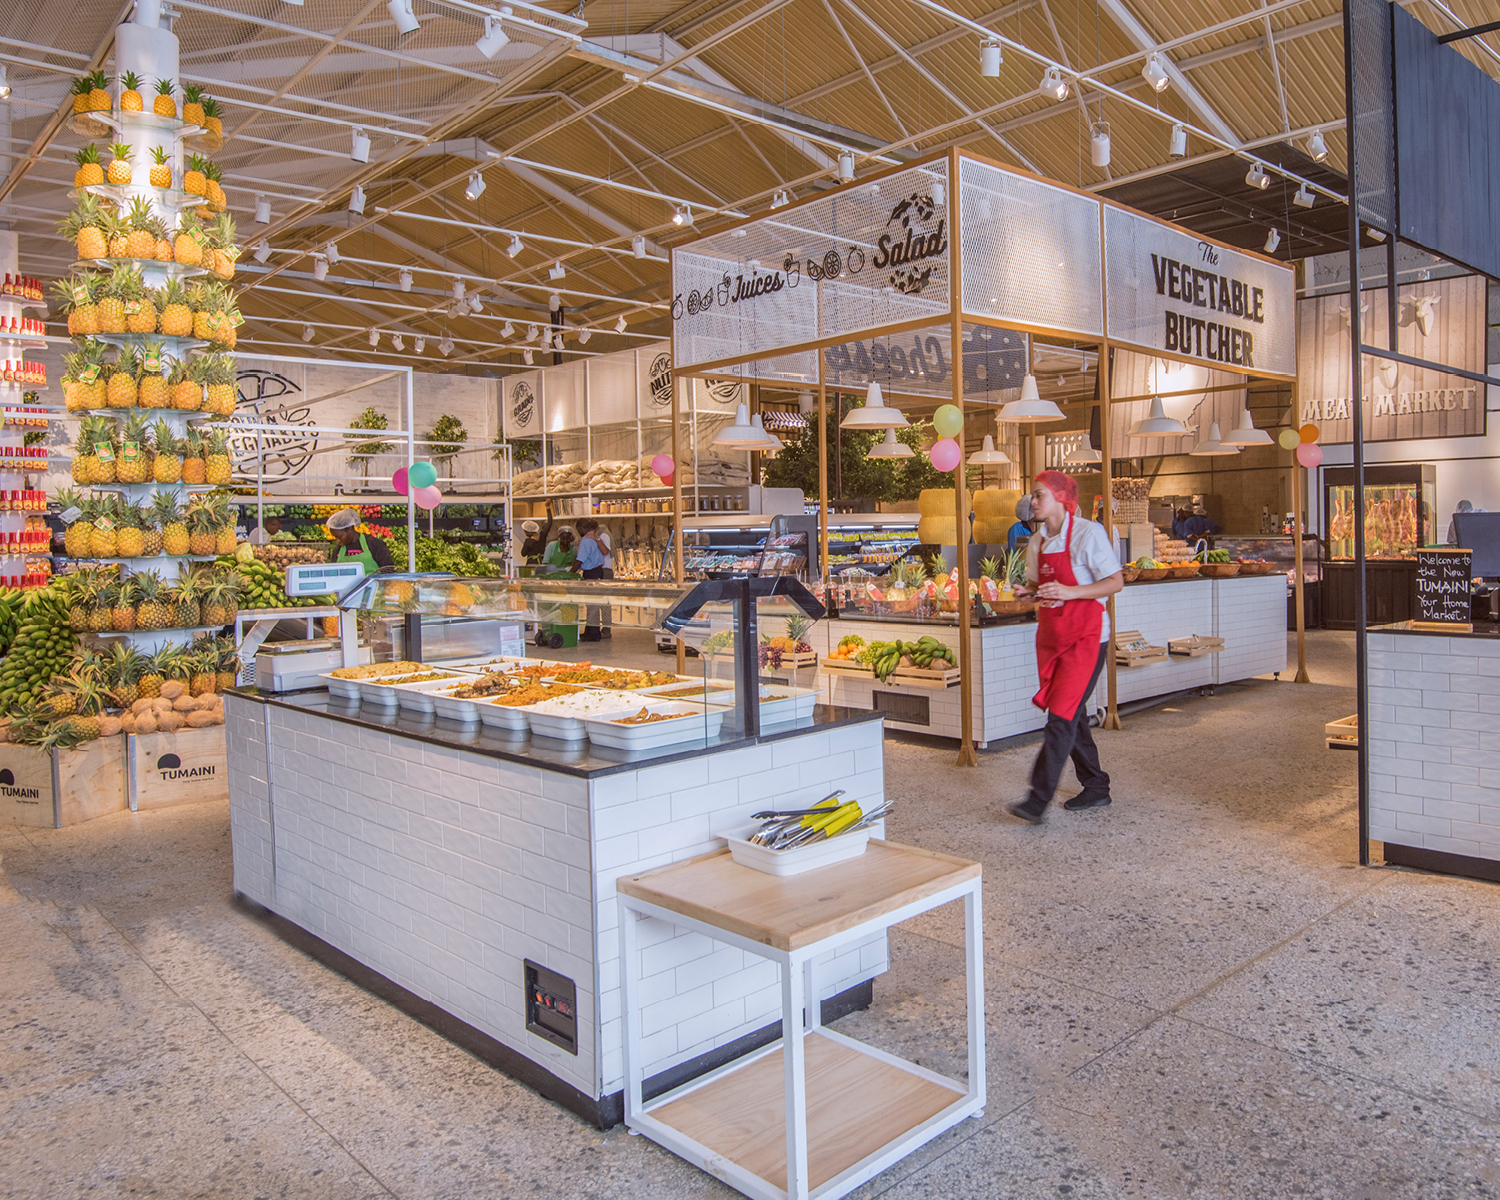 supermarket overview containing a rich buffet, salad bar and juice bar.